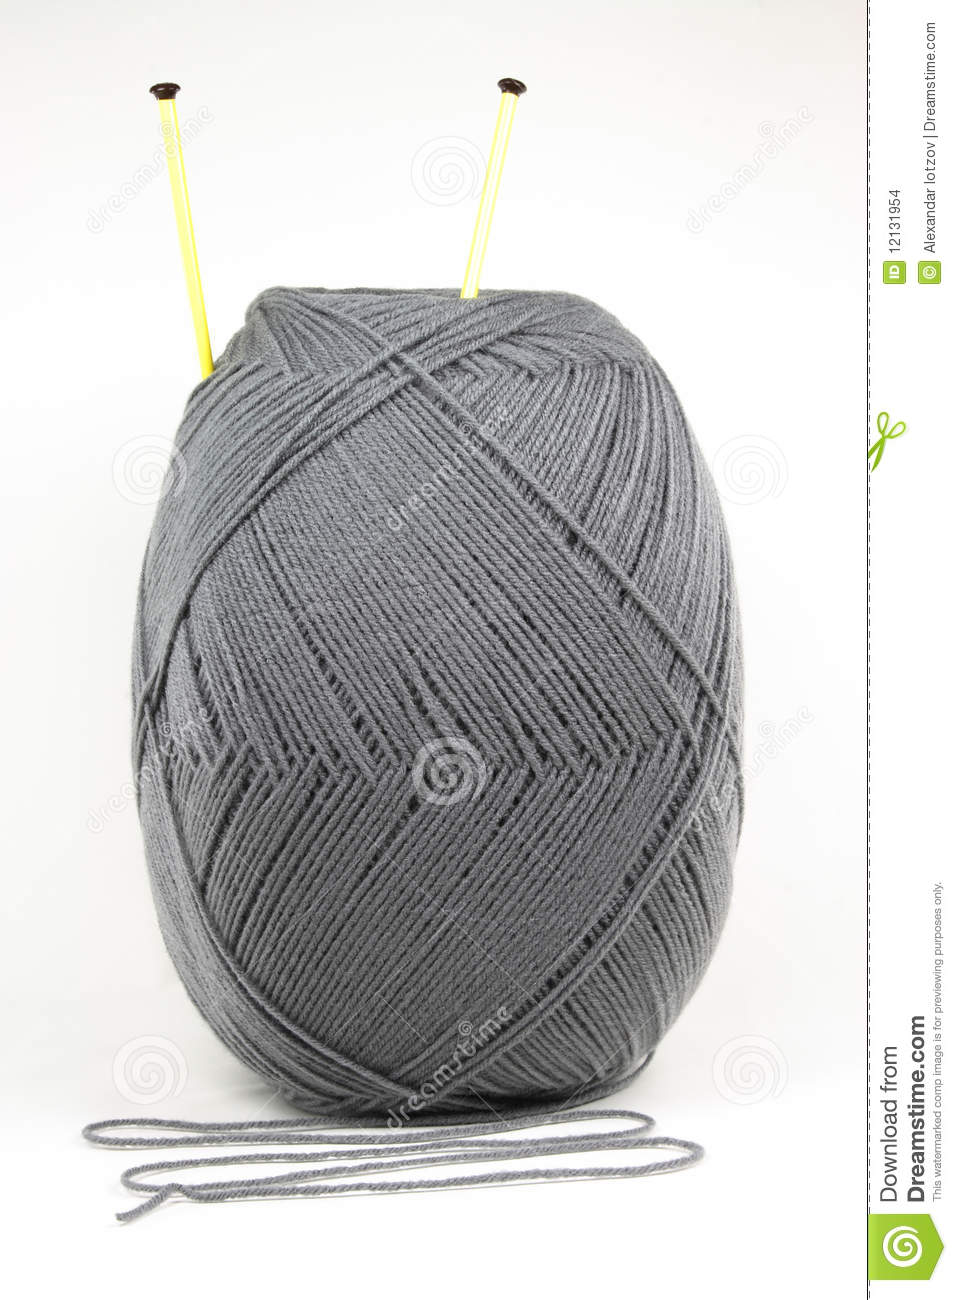 Knitting Patterns Wool And Needles : Wool And Knitting Needles. Stock Images - Image: 12131954